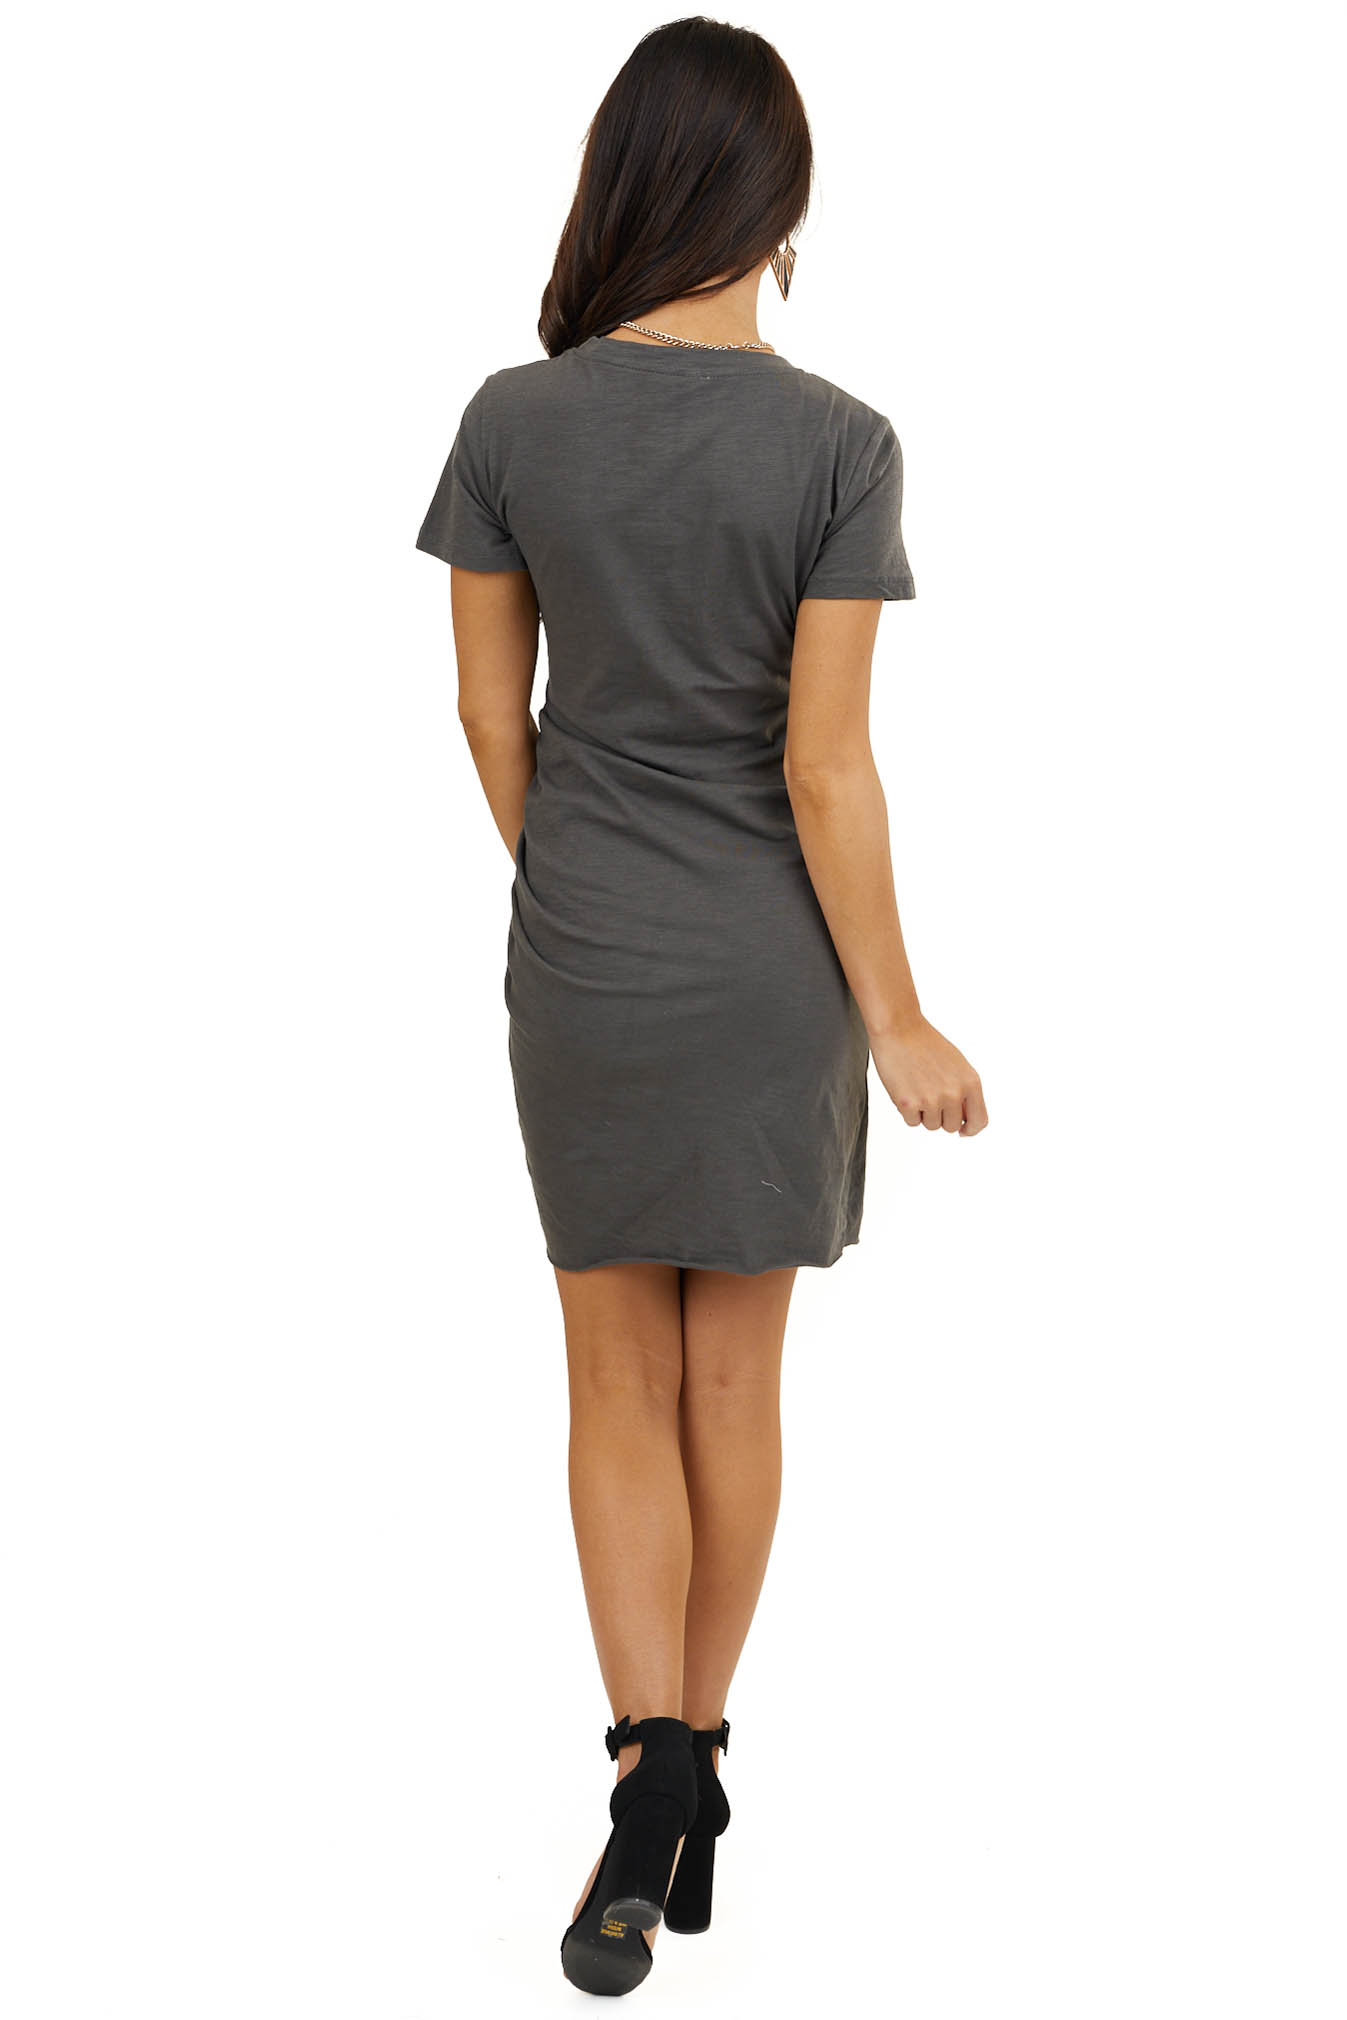 Charcoal Short Sleeve Mini Dress with Ruched Details